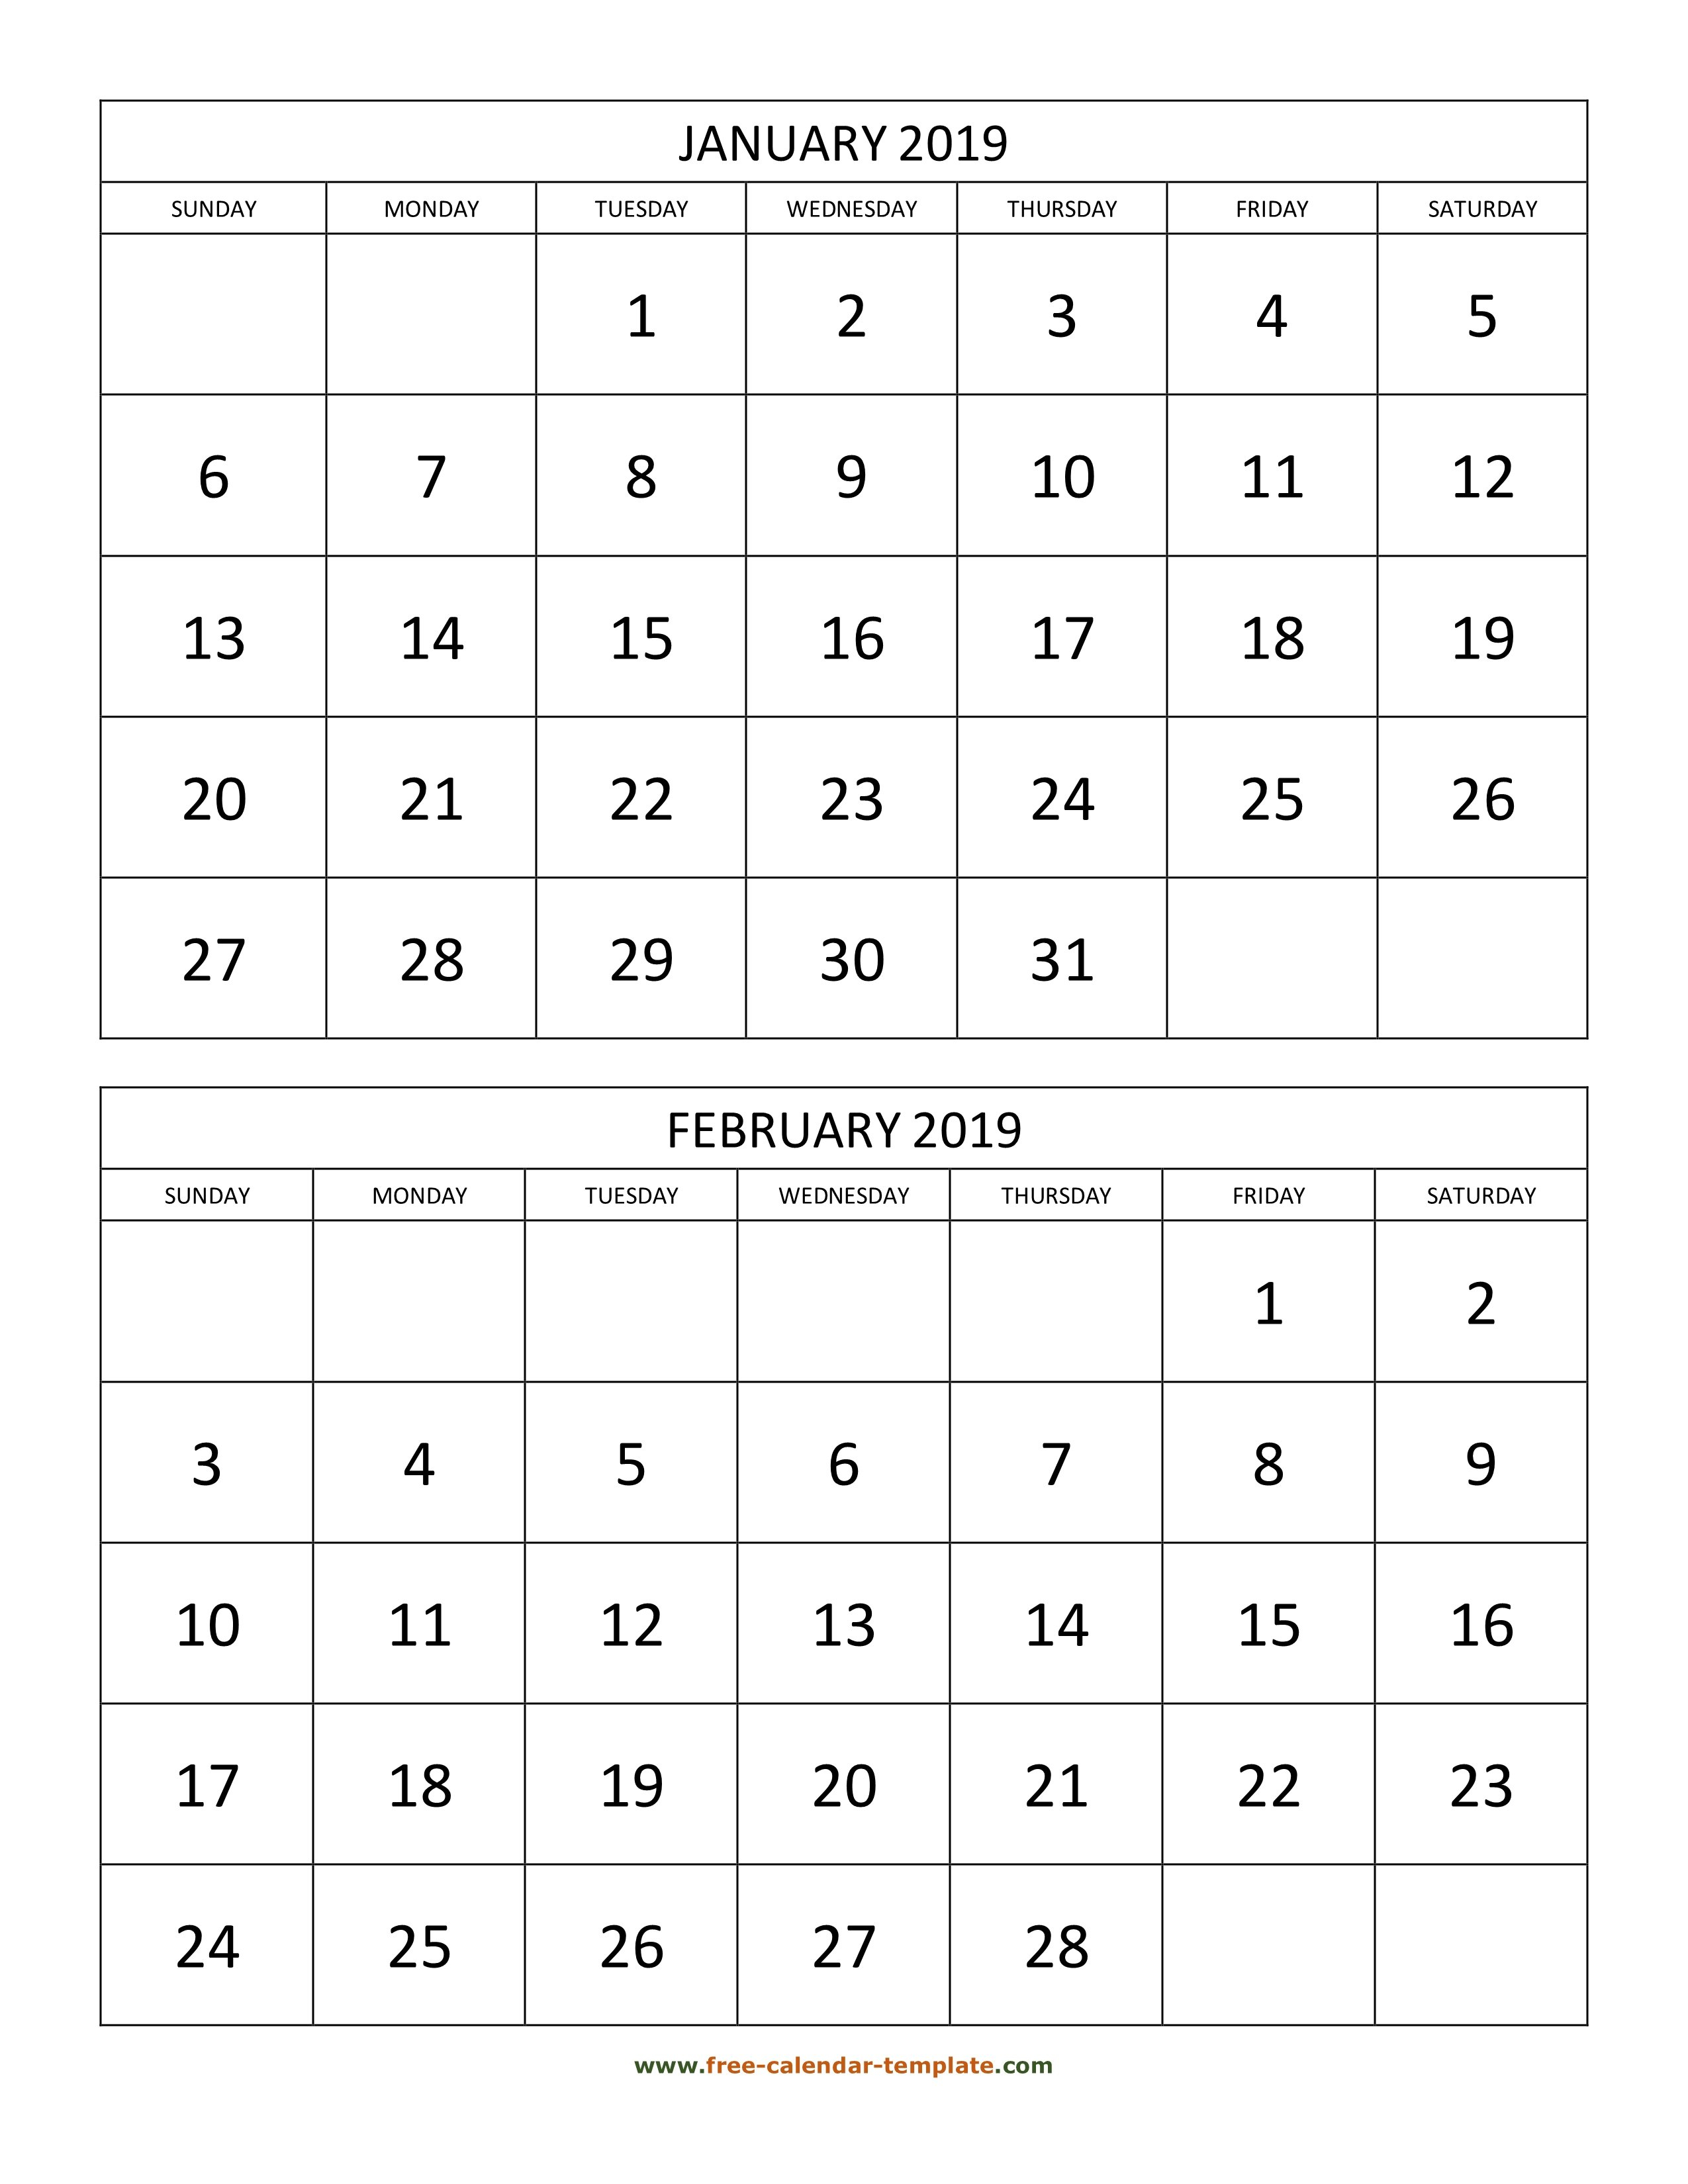 Monthly Calendar 2019, 2 Months Per Page (Vertical)   Free Calendar Calendar 2019 2 Months Per Page